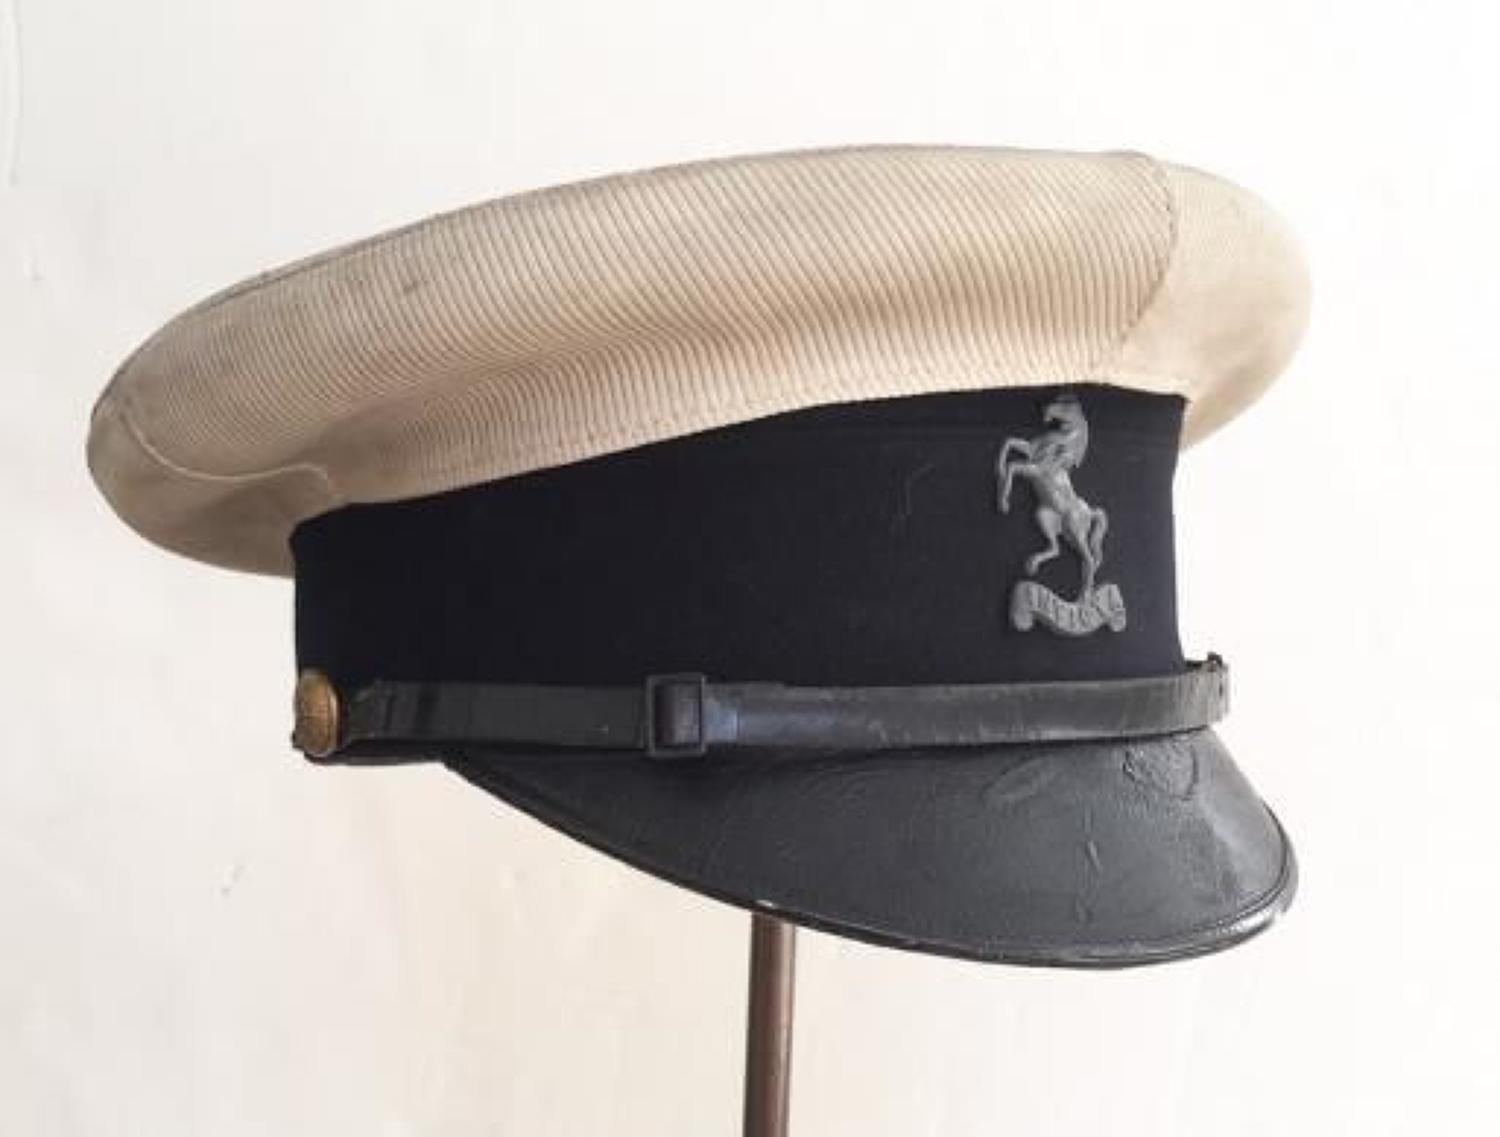 Kent Cyclist Battalion Officer's peaked cap circa 1910-20.